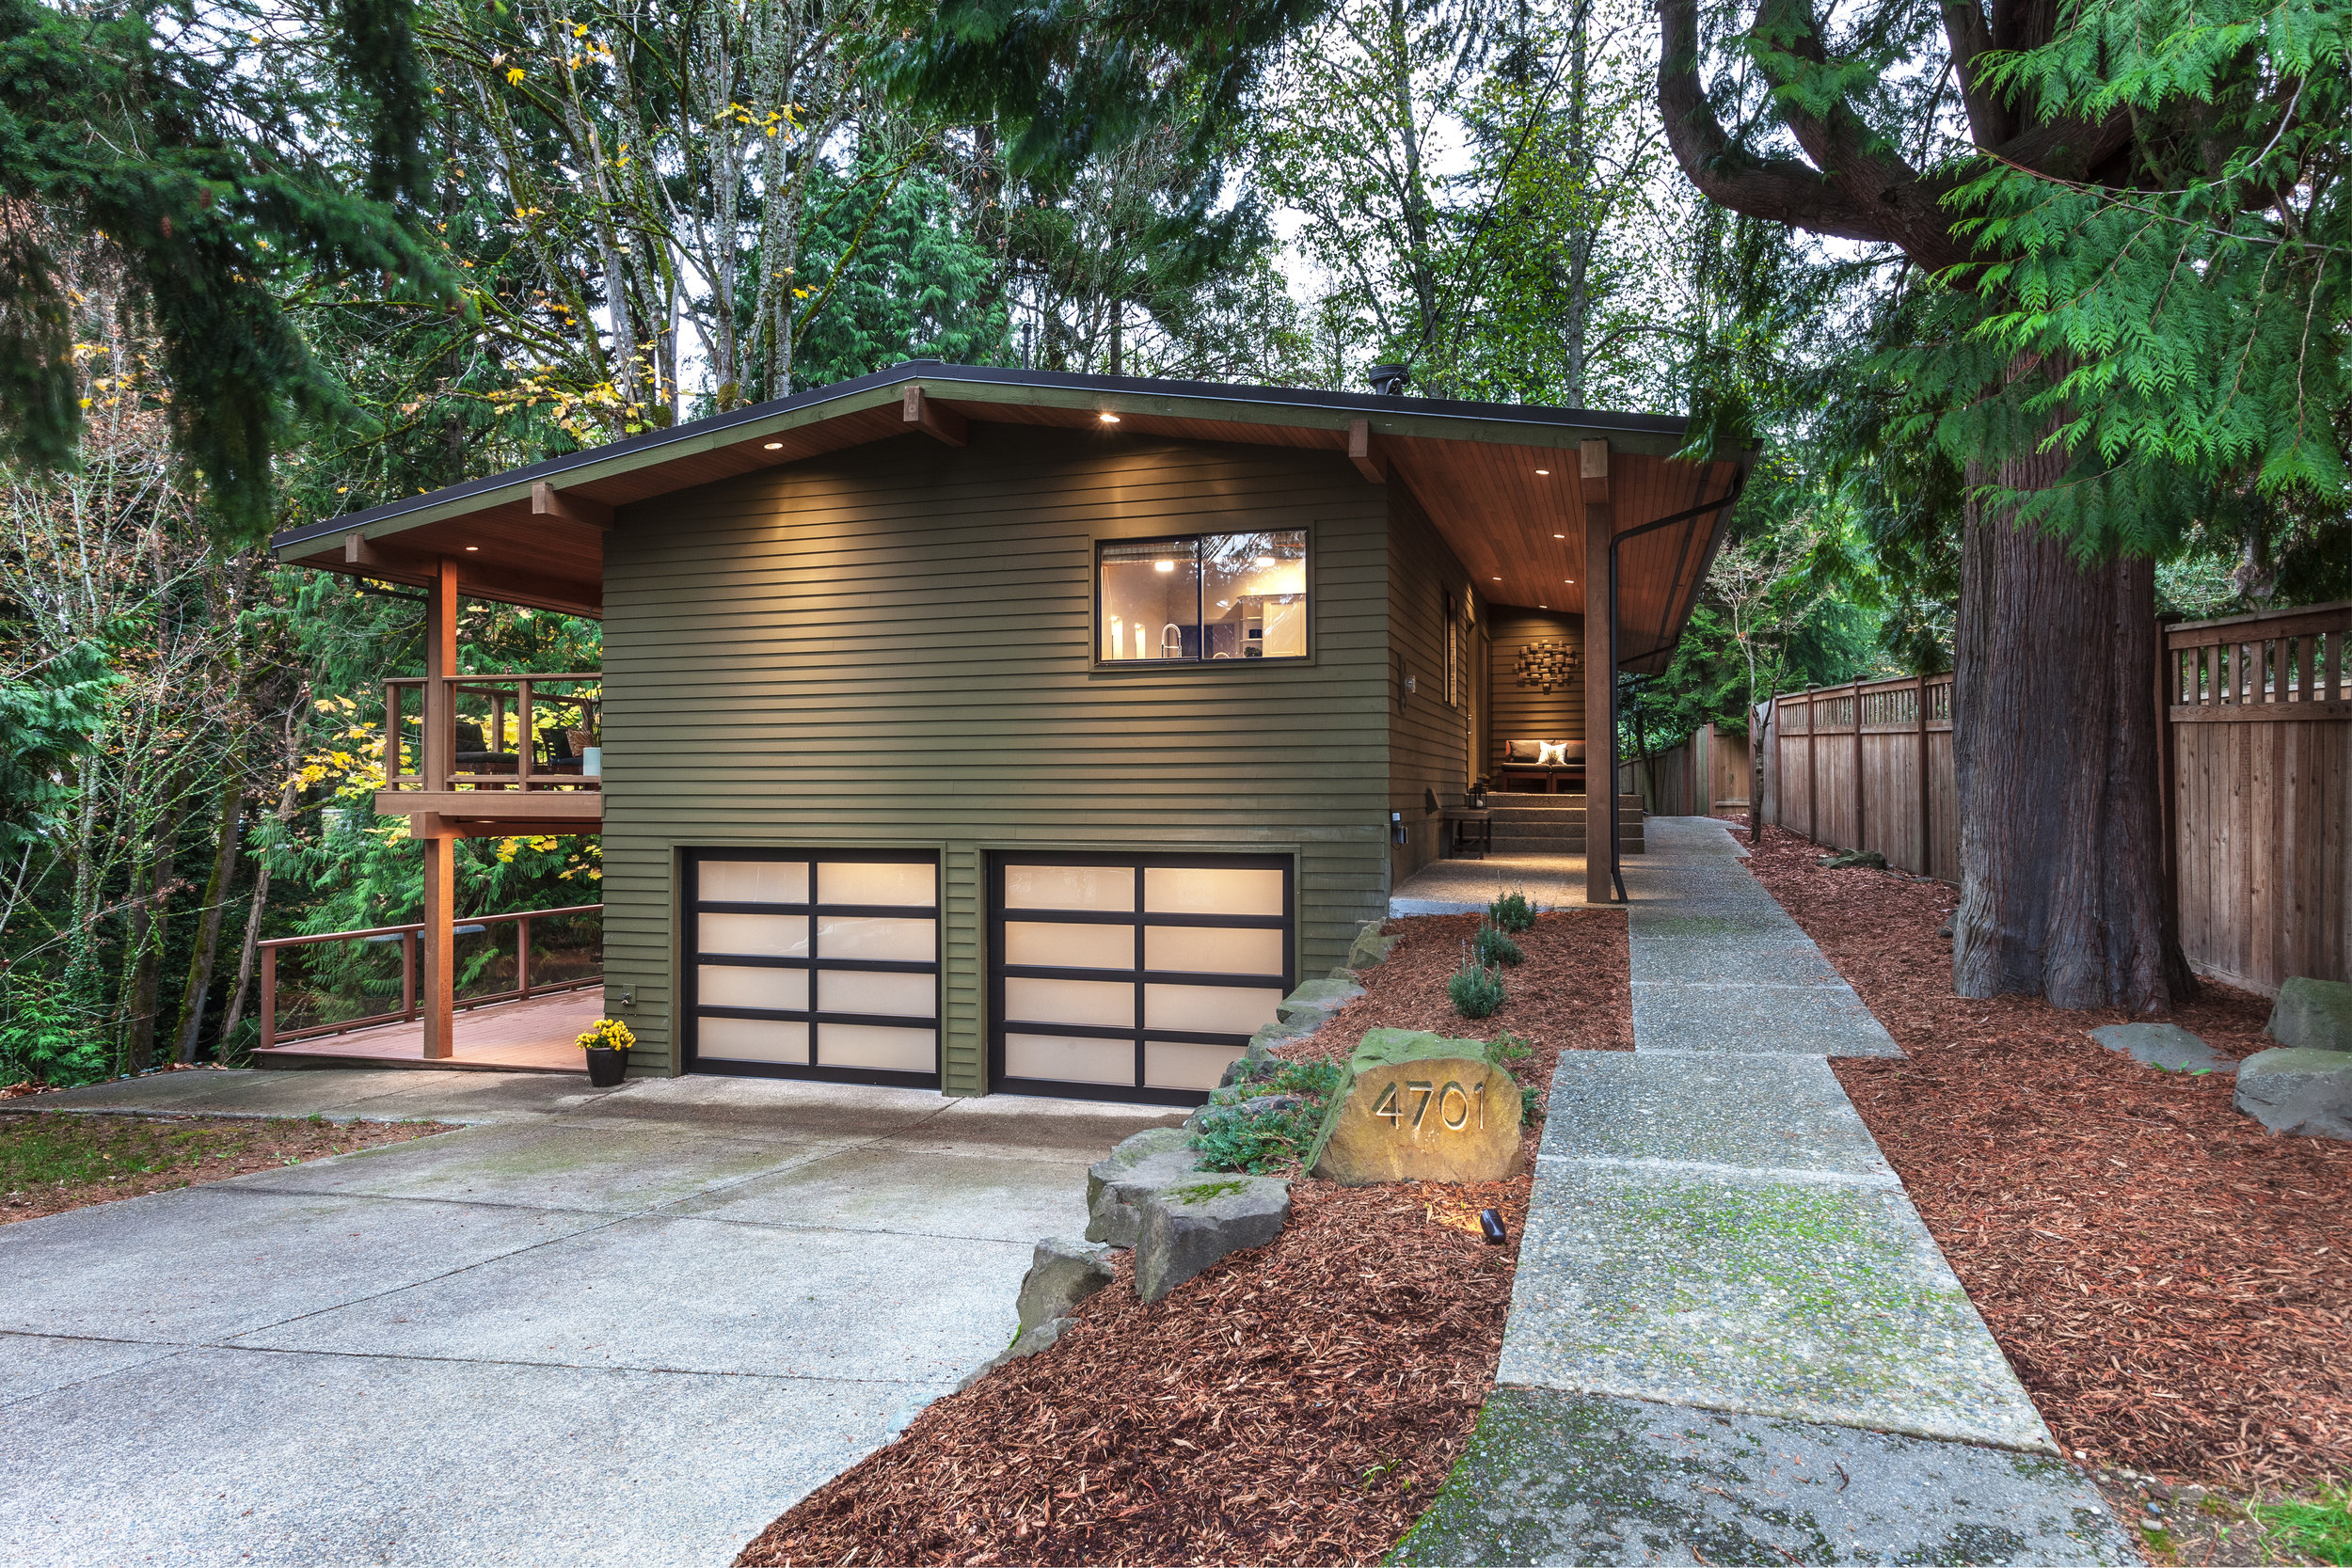 4701 88th Ave SE, Mercer Island | $1,132,500